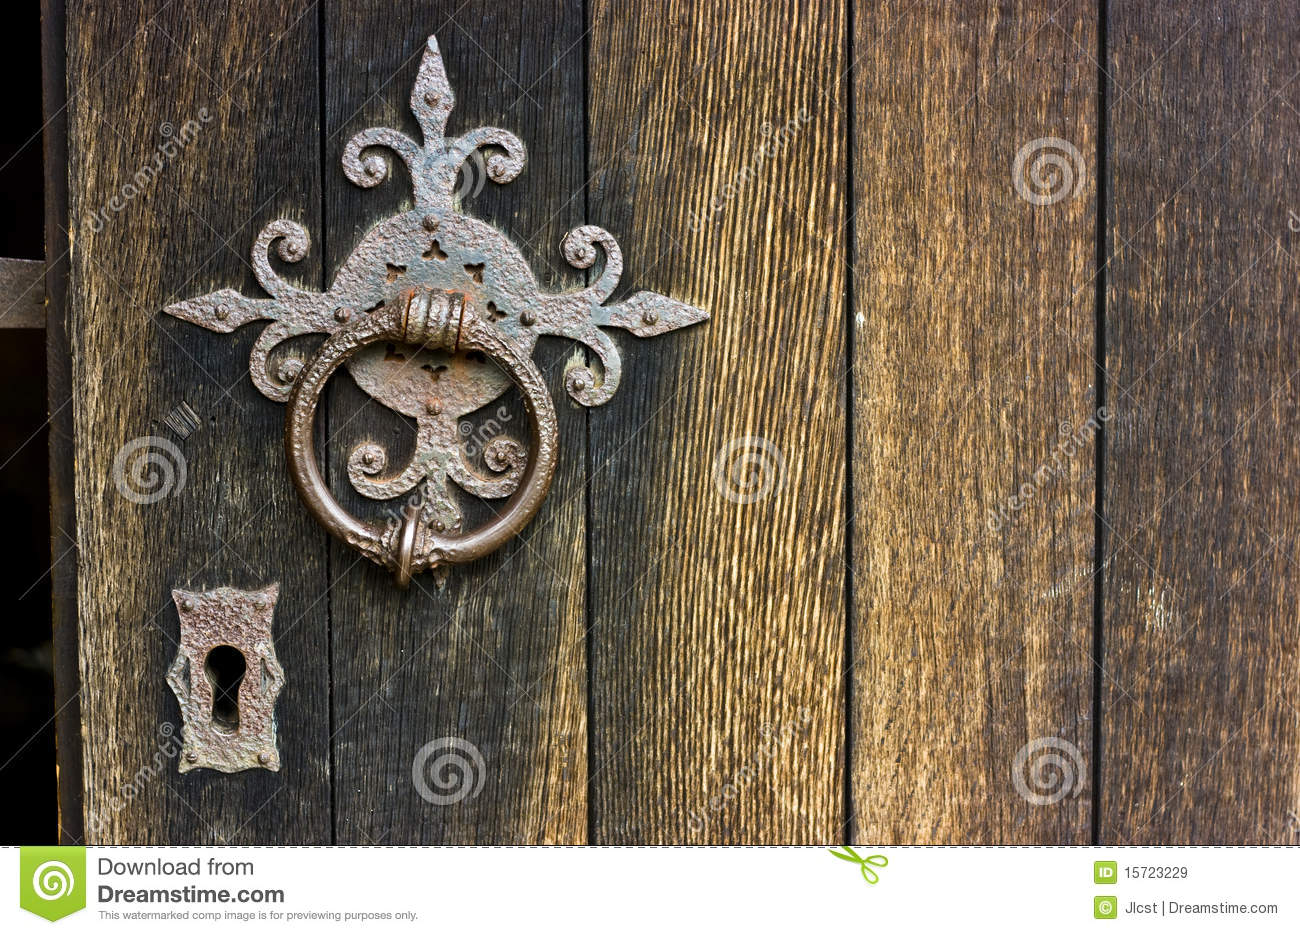 Ancient Door Handle Royalty Free Stock Images - Image: 15723229